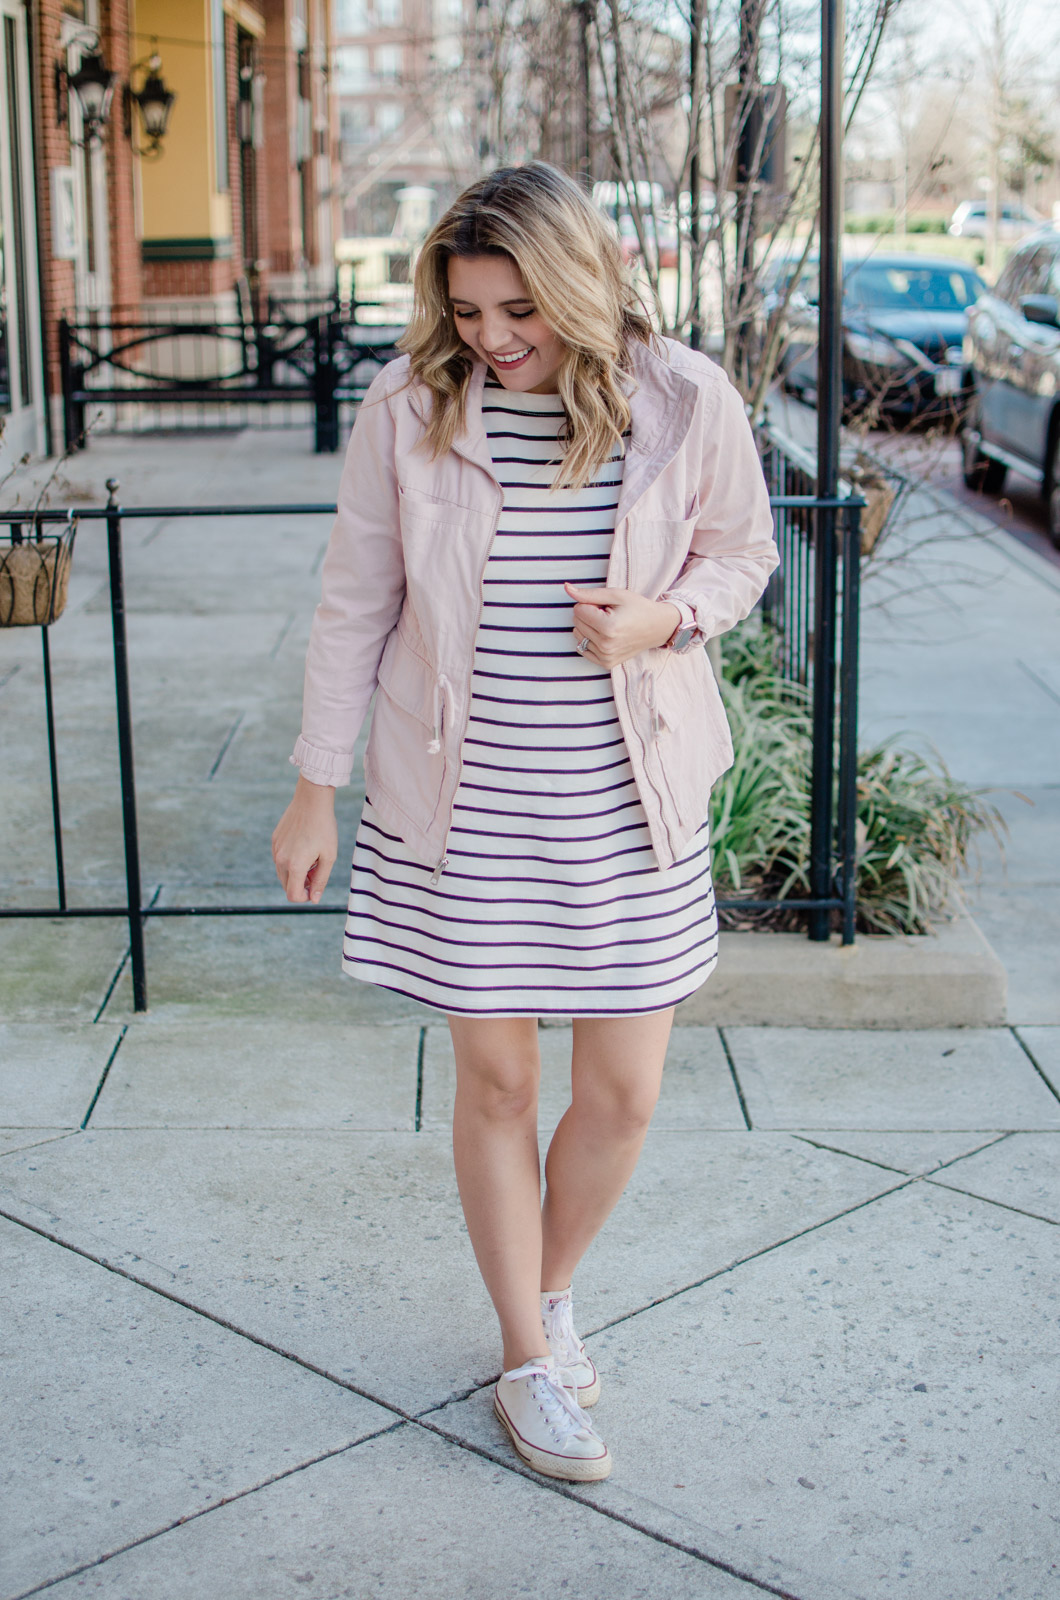 82c4e388351b Affordable style blogger Lauren Dix shares six stripe dress outfits for  going into spring! Come